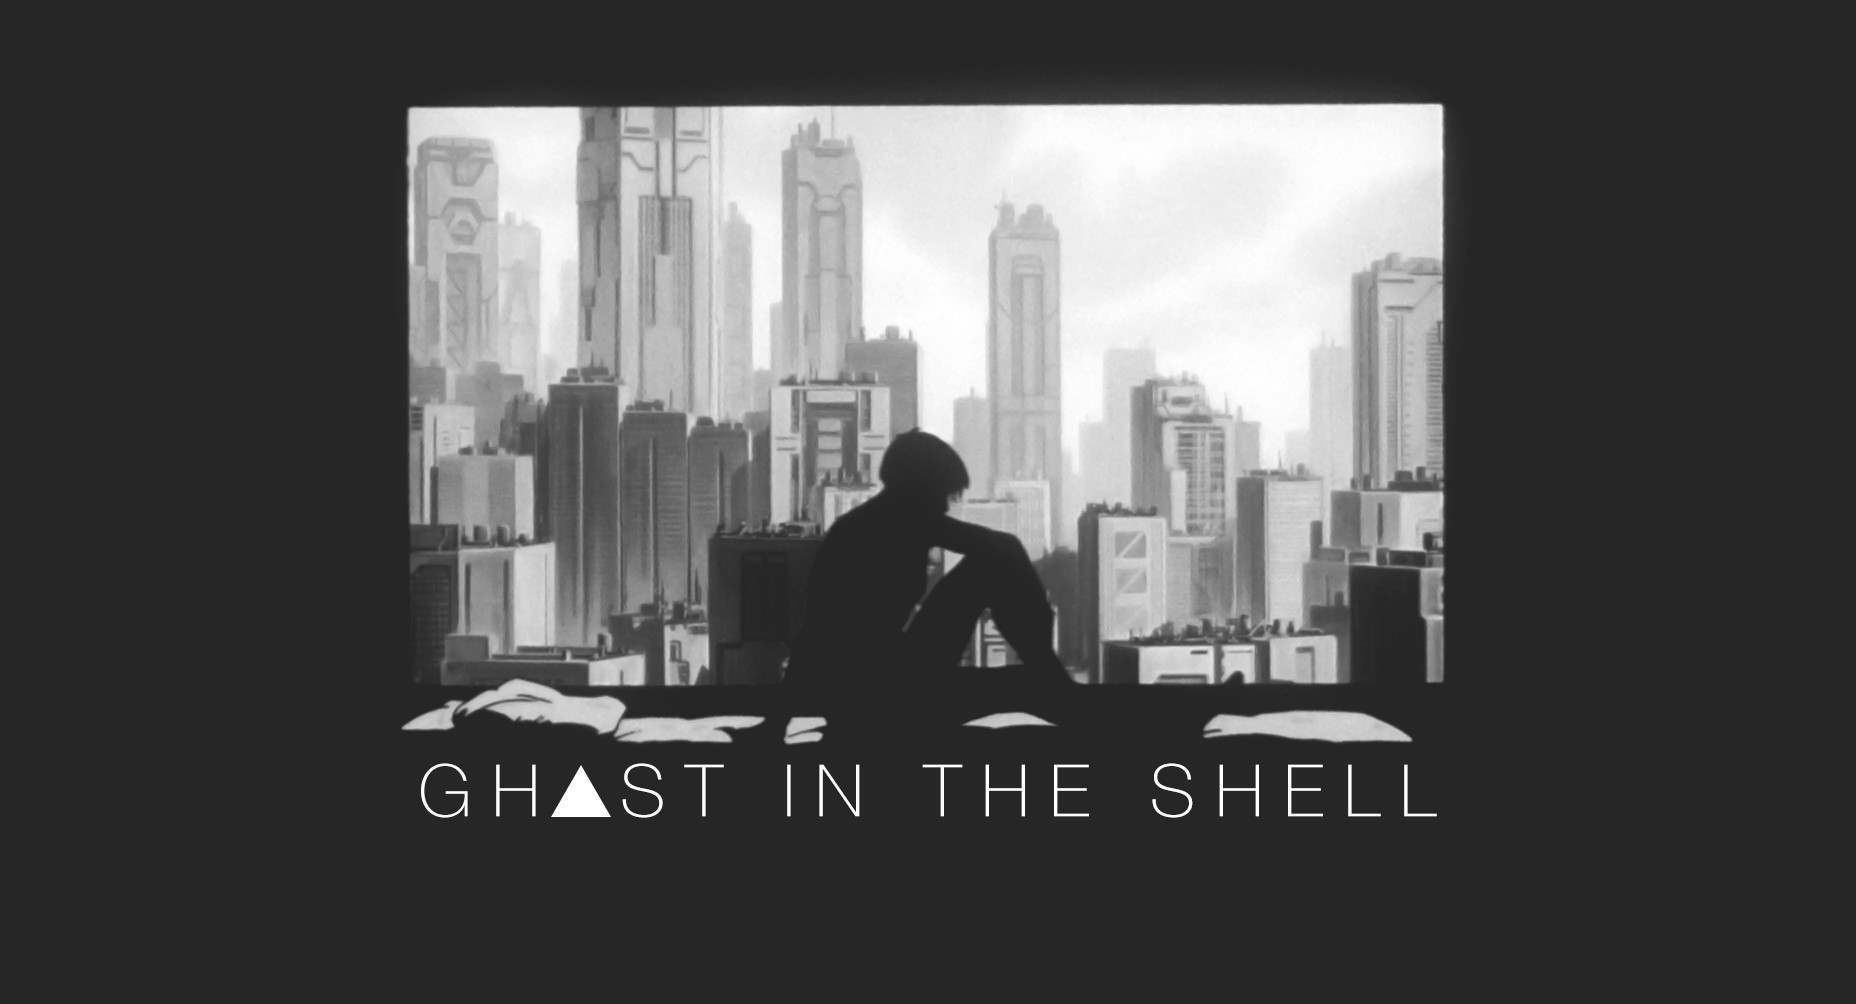 Anime 1856x1004 Ghost in the Shell Kusanagi Motoko minimalism screen shot monochrome silhouette window city cityscape simple background